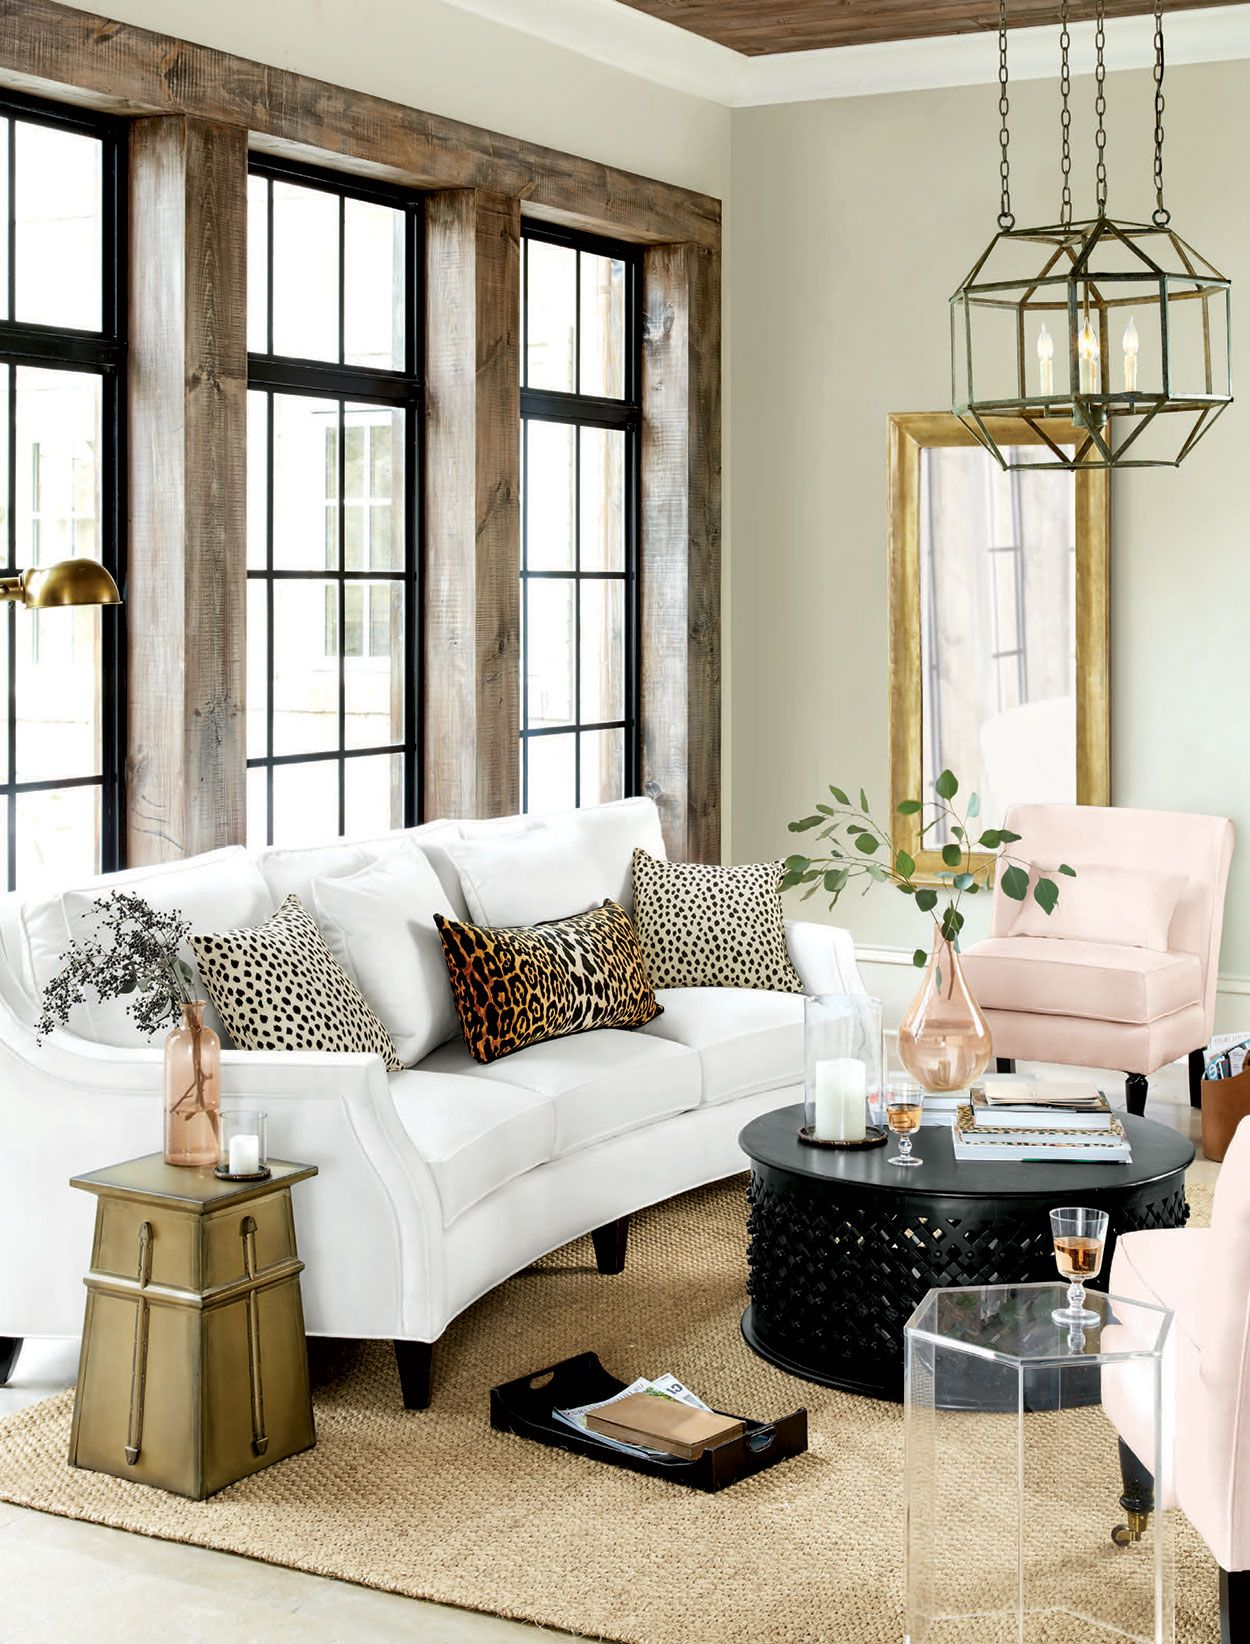 A Few Animal Print Throw Pillows Bring Playful Modern Edge To This Living Room